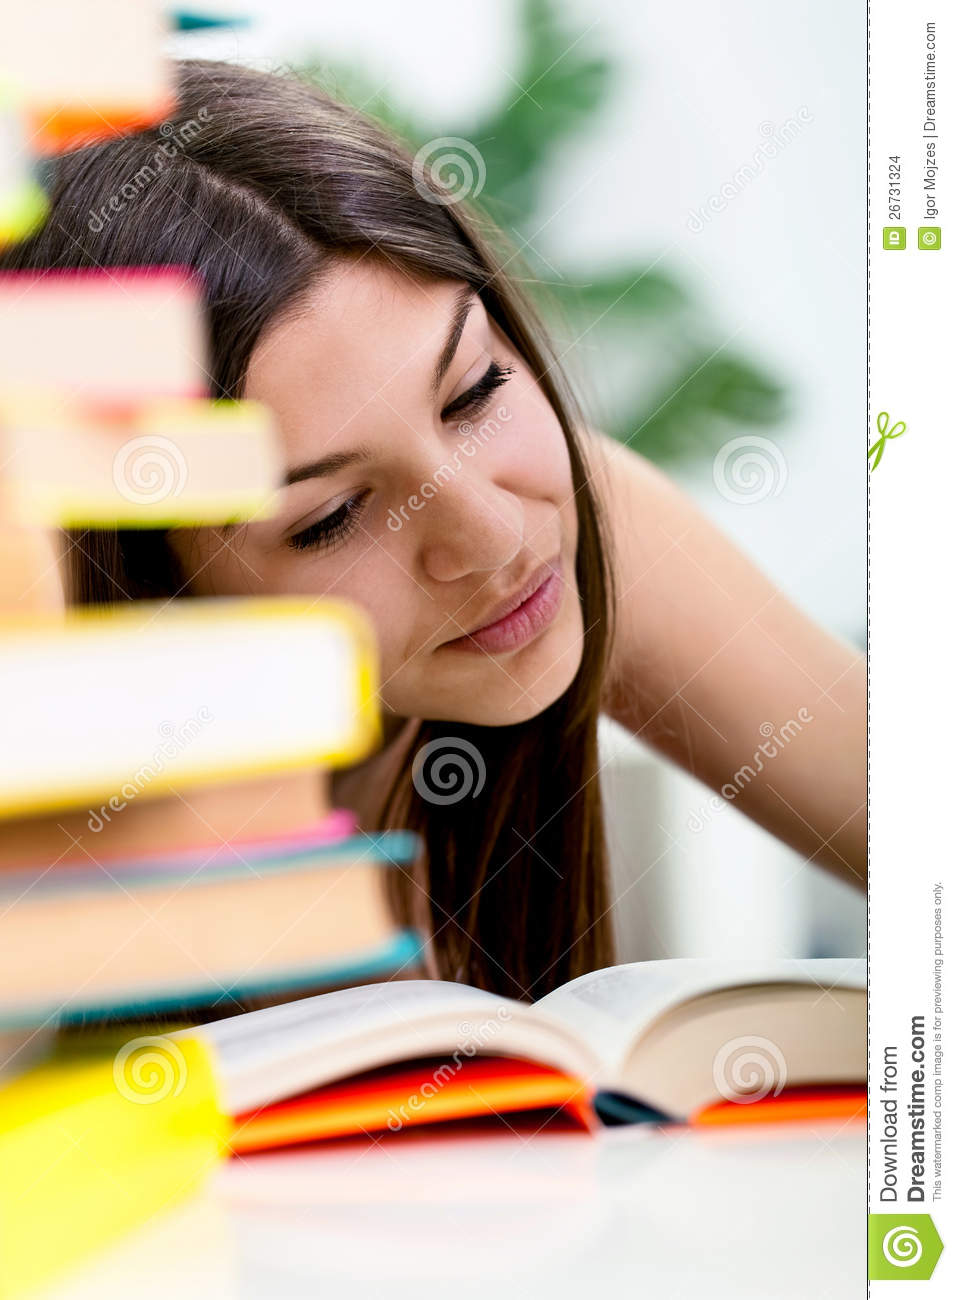 Student Learning In Exam Time Stock Photo Image Of Expression